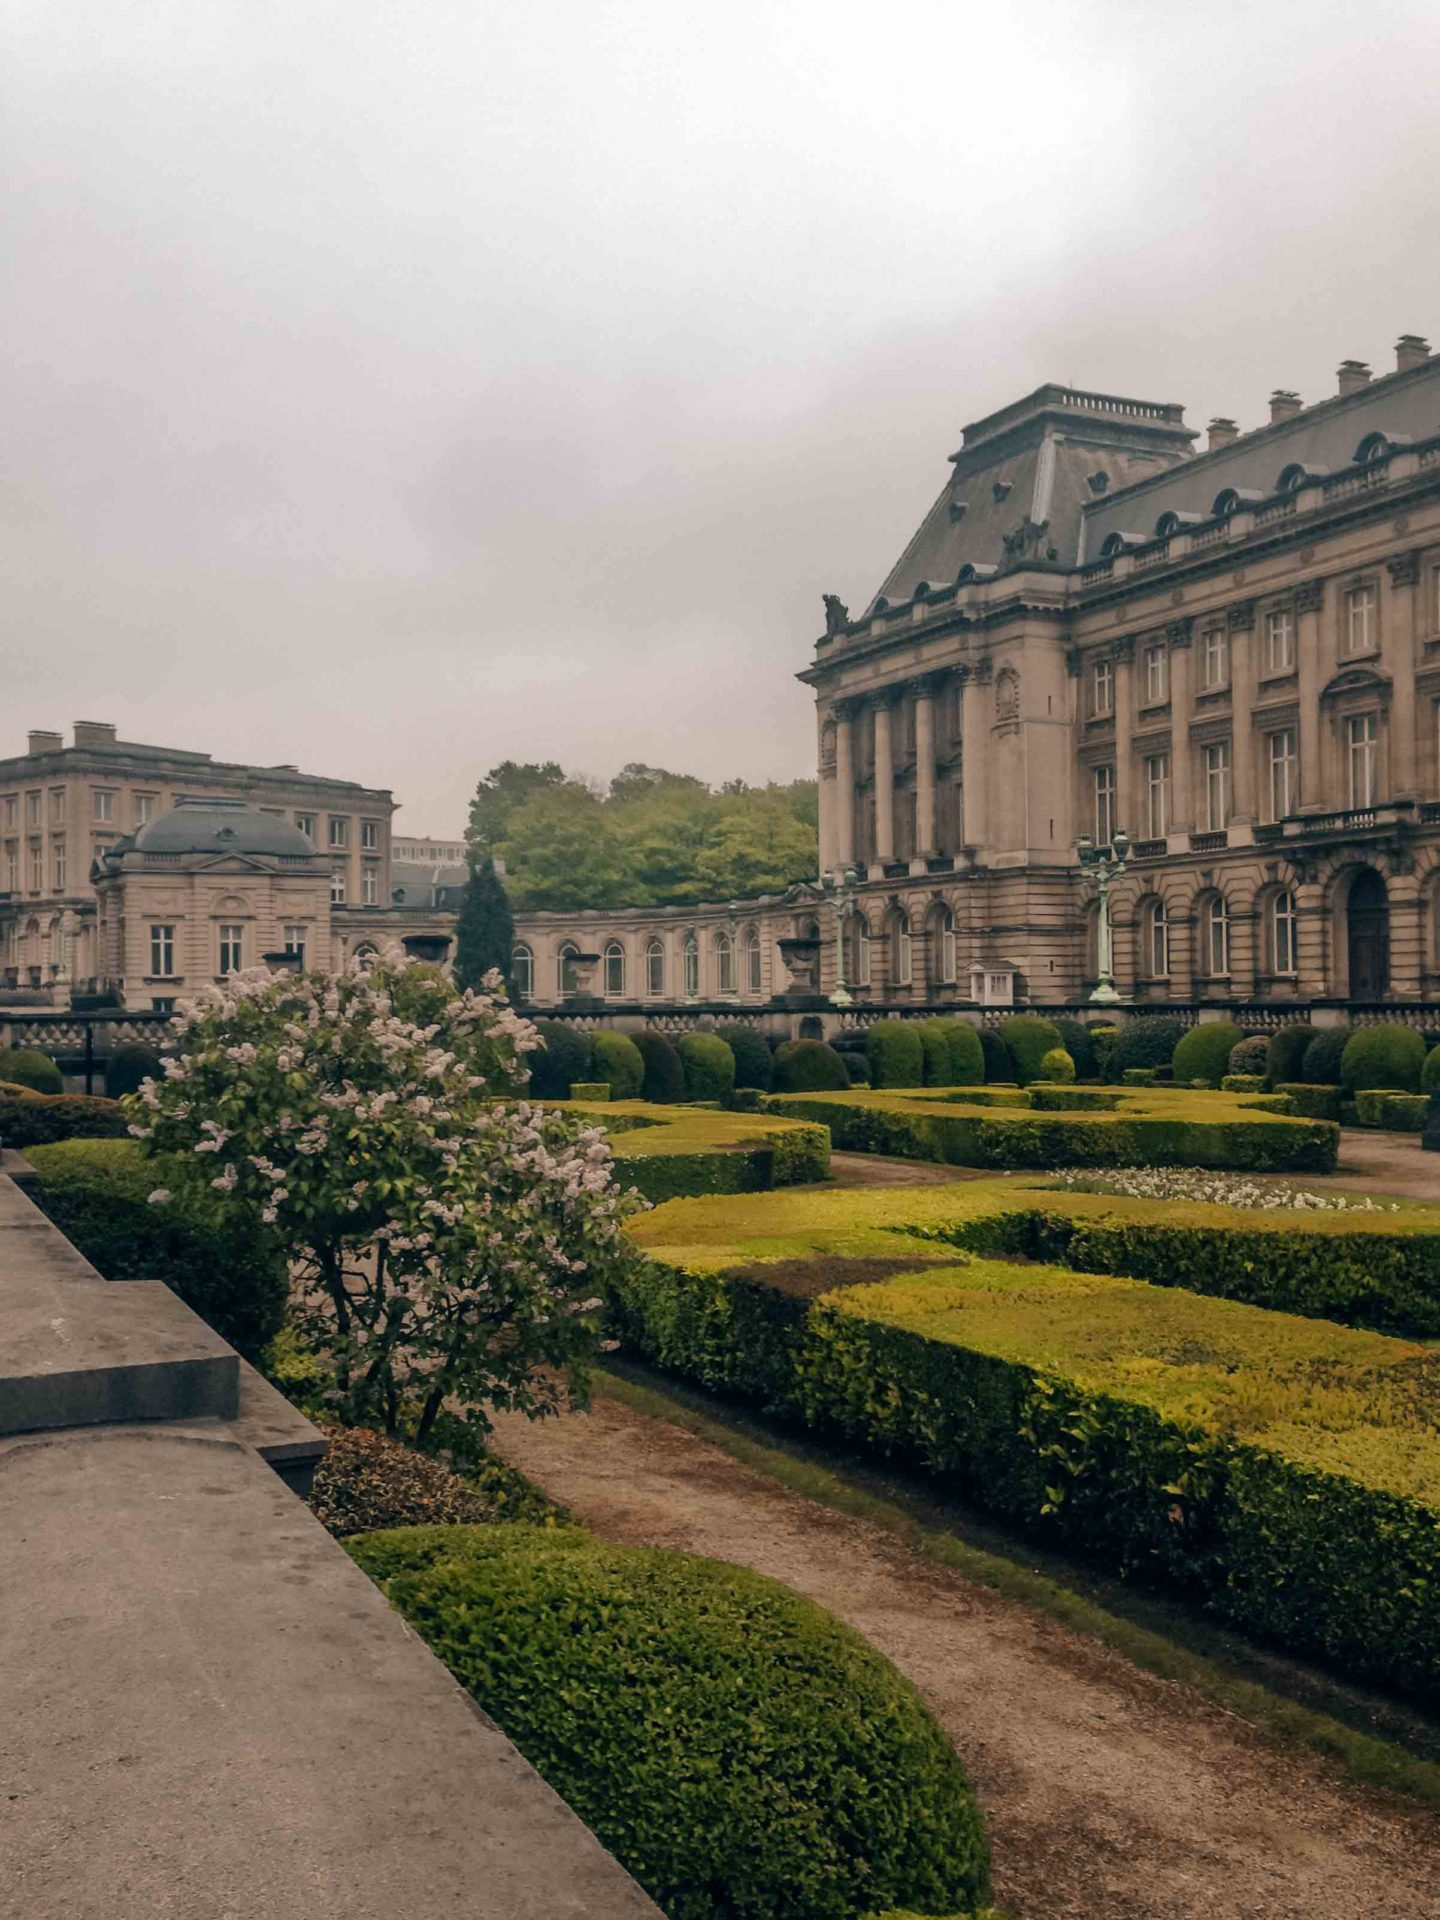 Royal Palace of Brussels, gardens